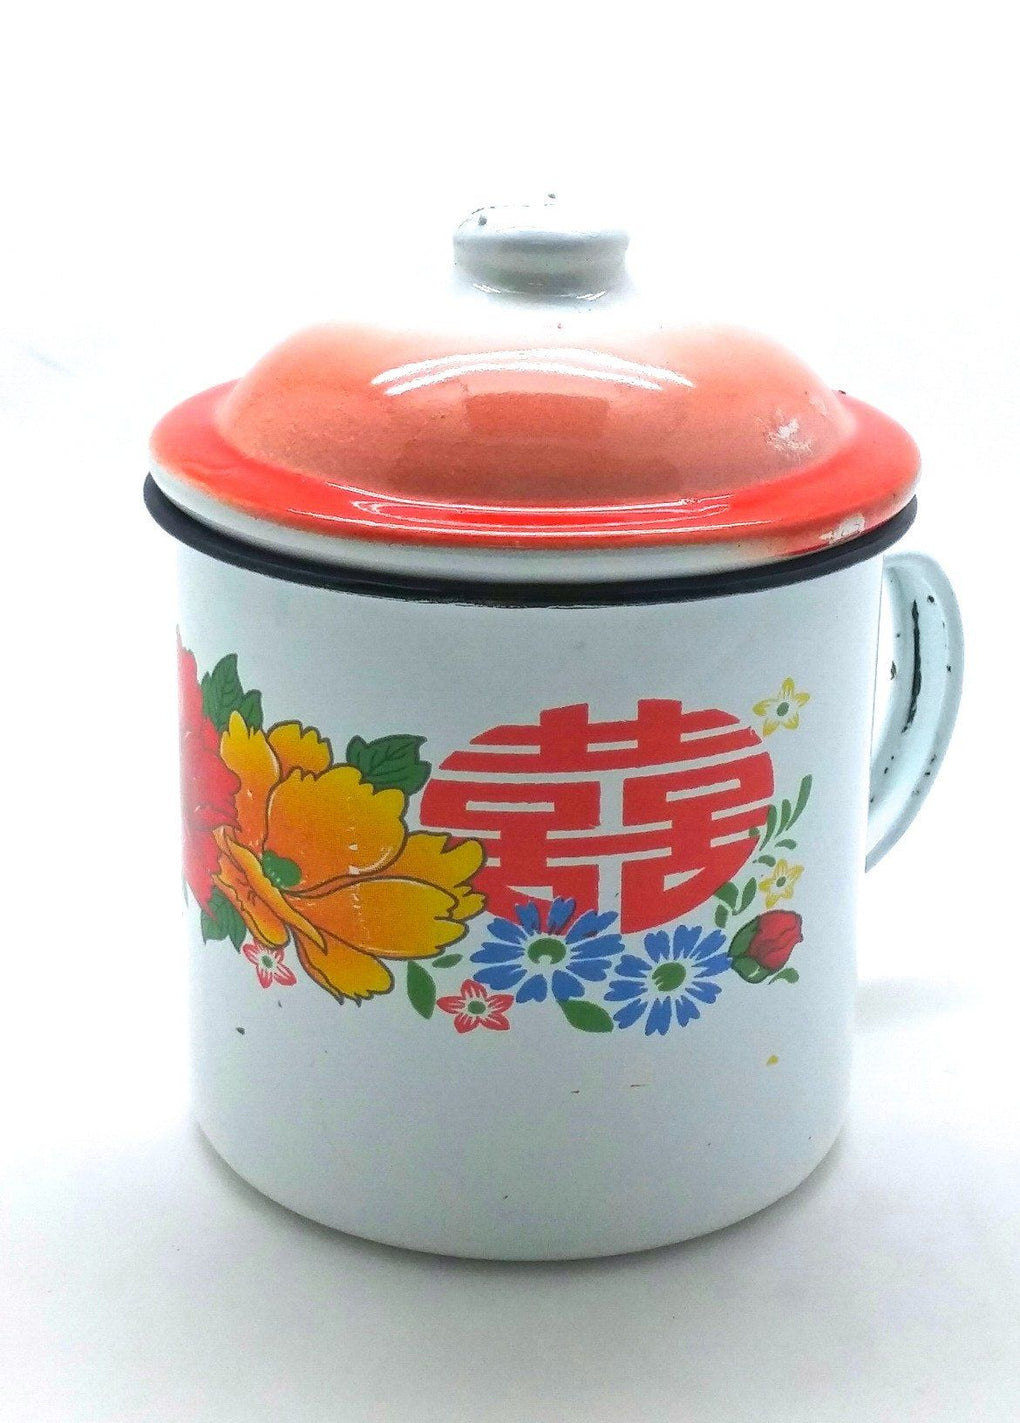 Double Happiness Vintage Enamel Mug Mugs Little Red Box